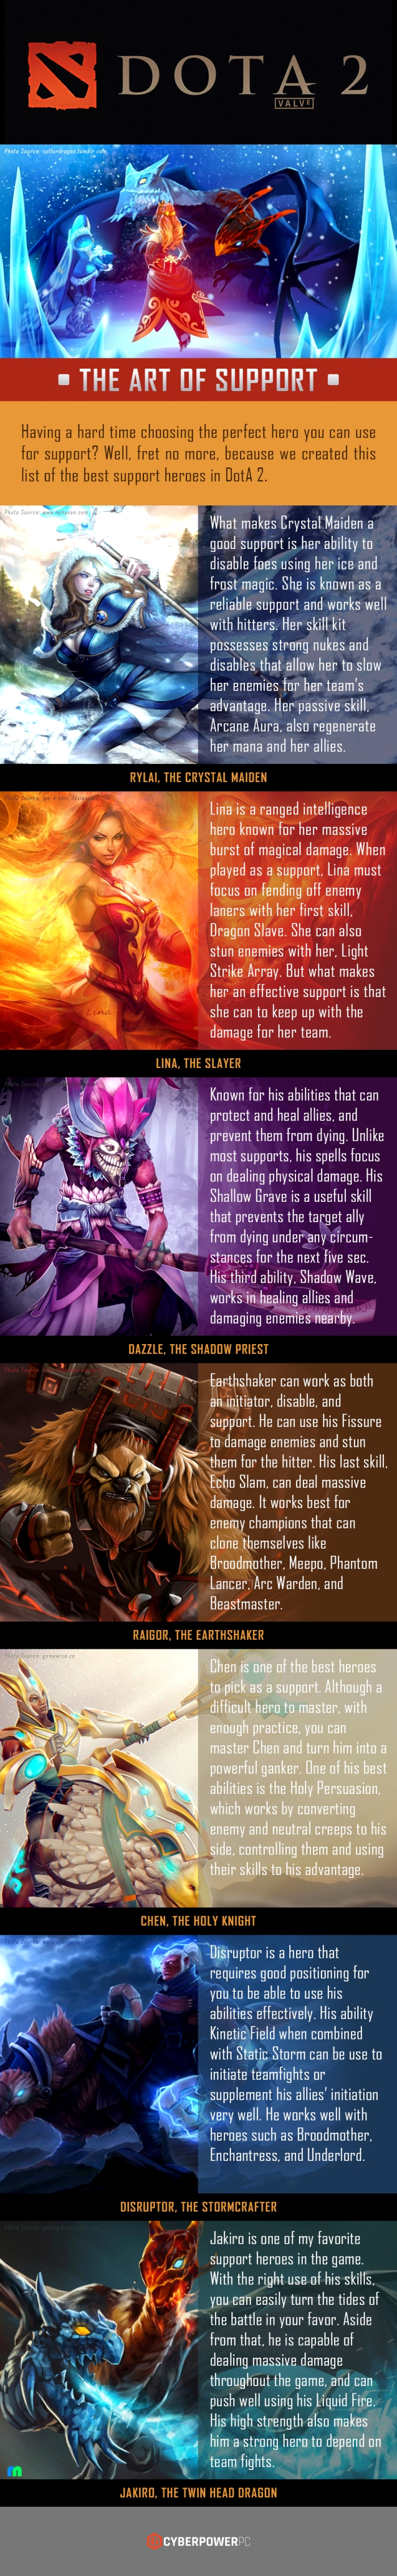 Dota 2- Art of Supports